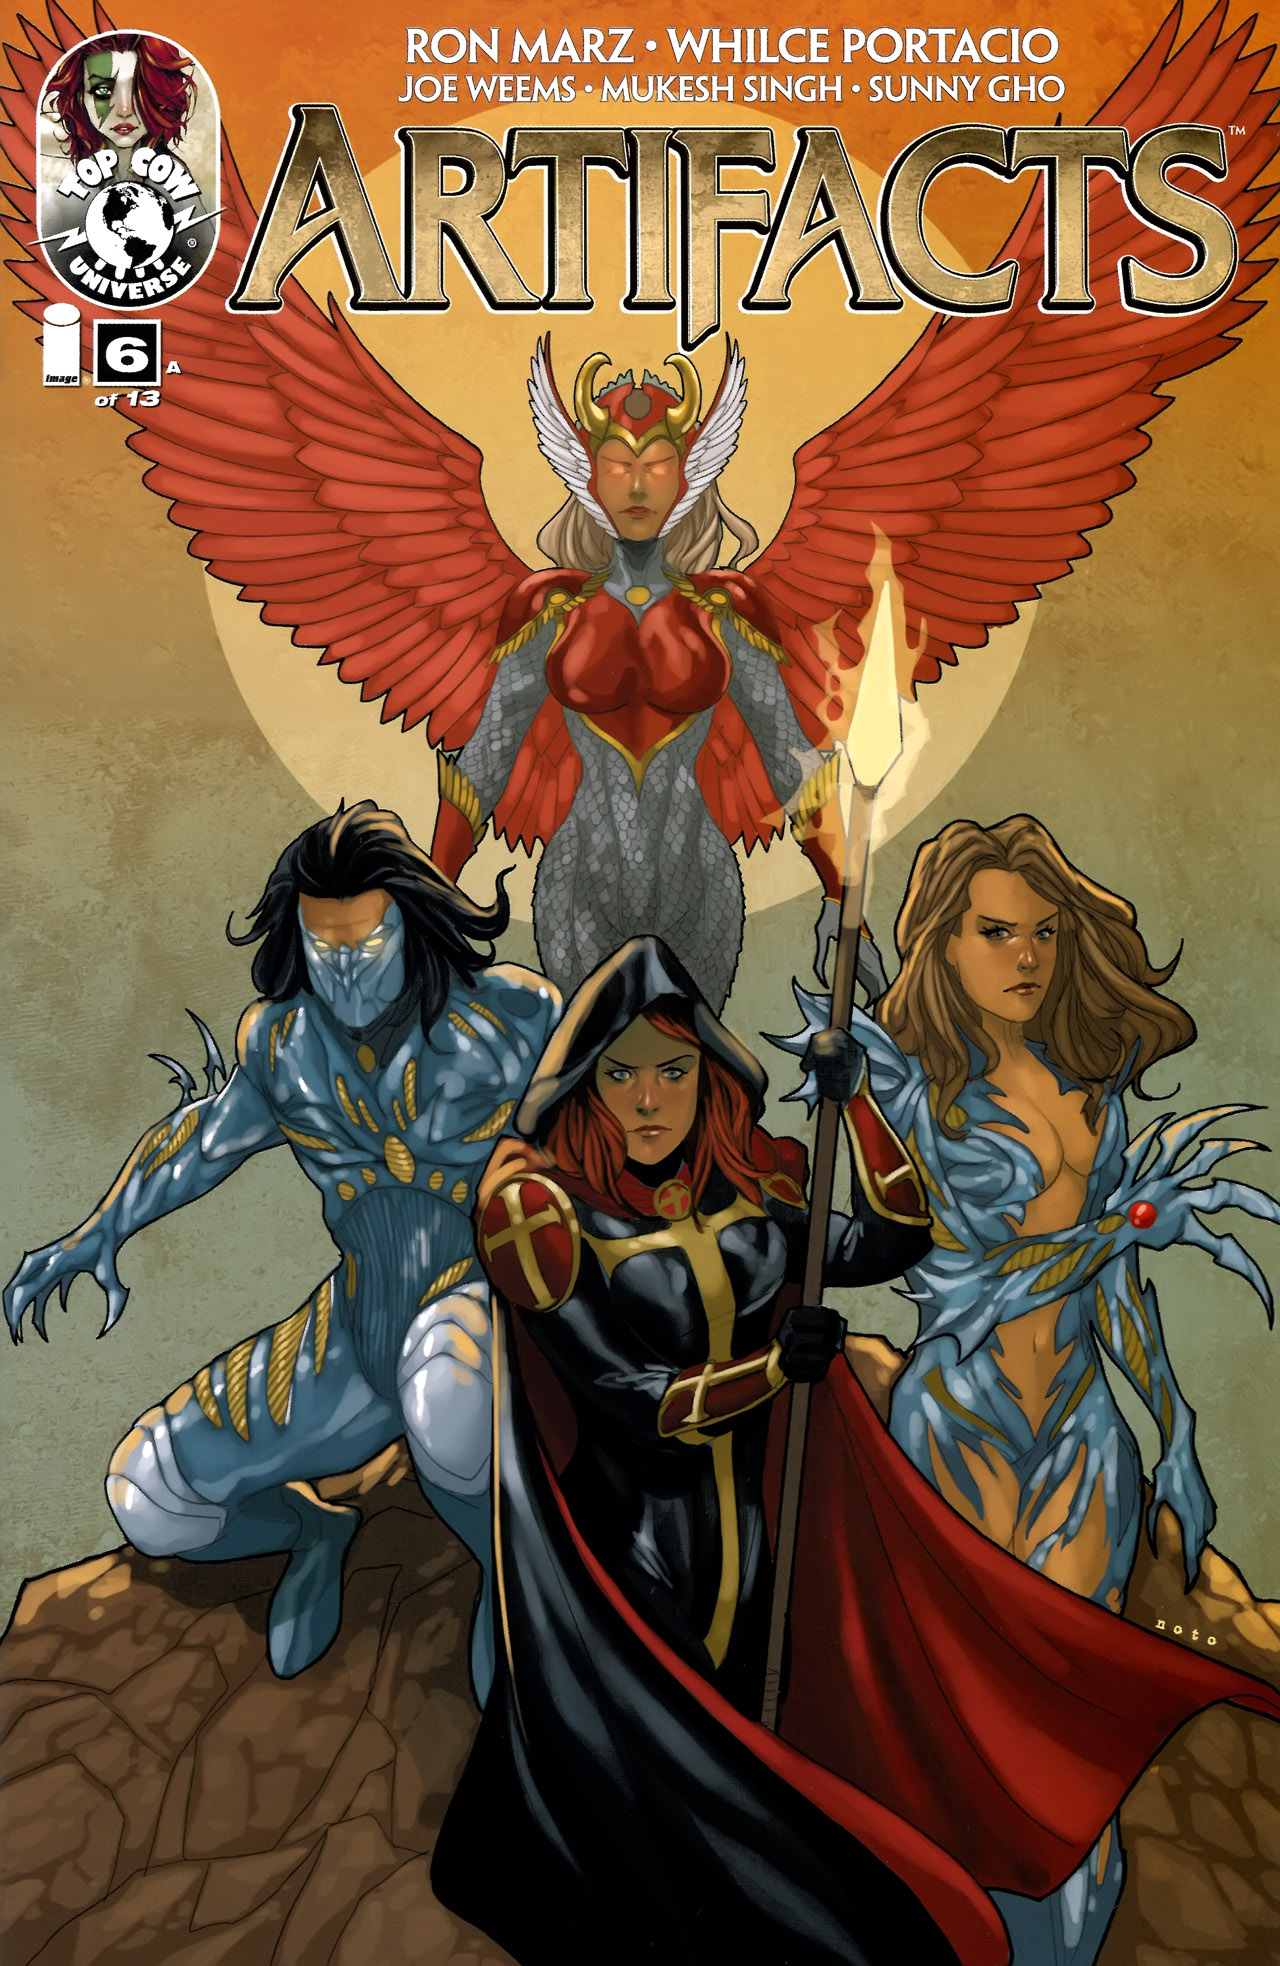 Read online Artifacts comic -  Issue #6 - 1